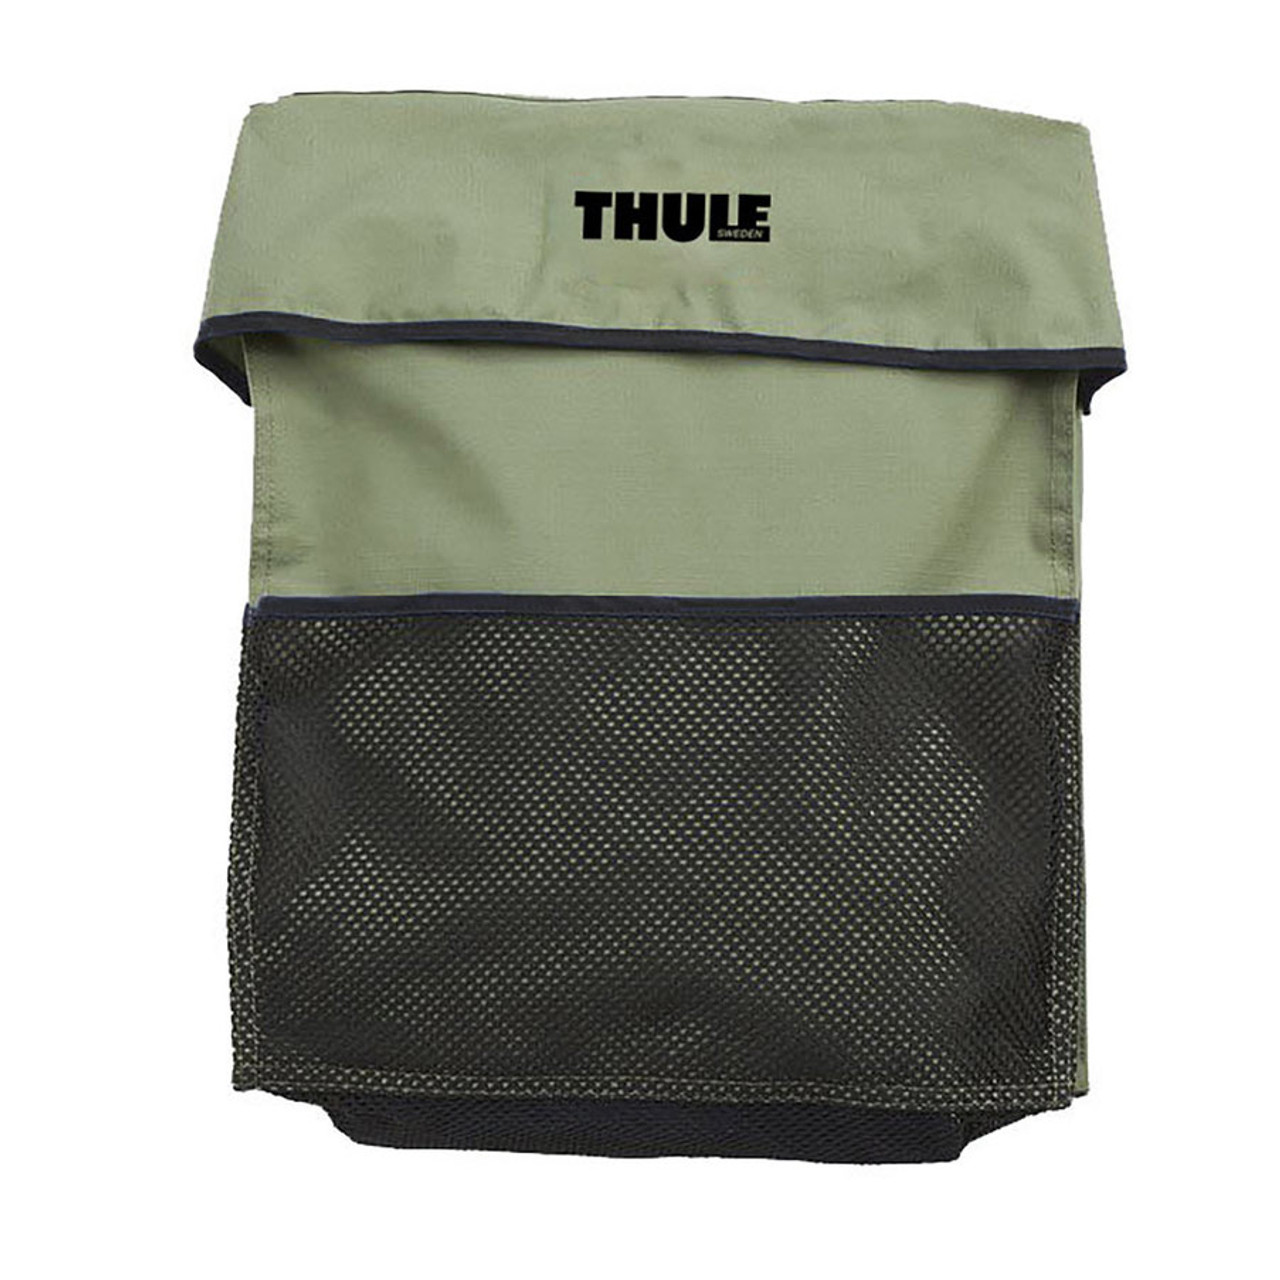 Thule Tepui Boot Bag for Rooftop Tents